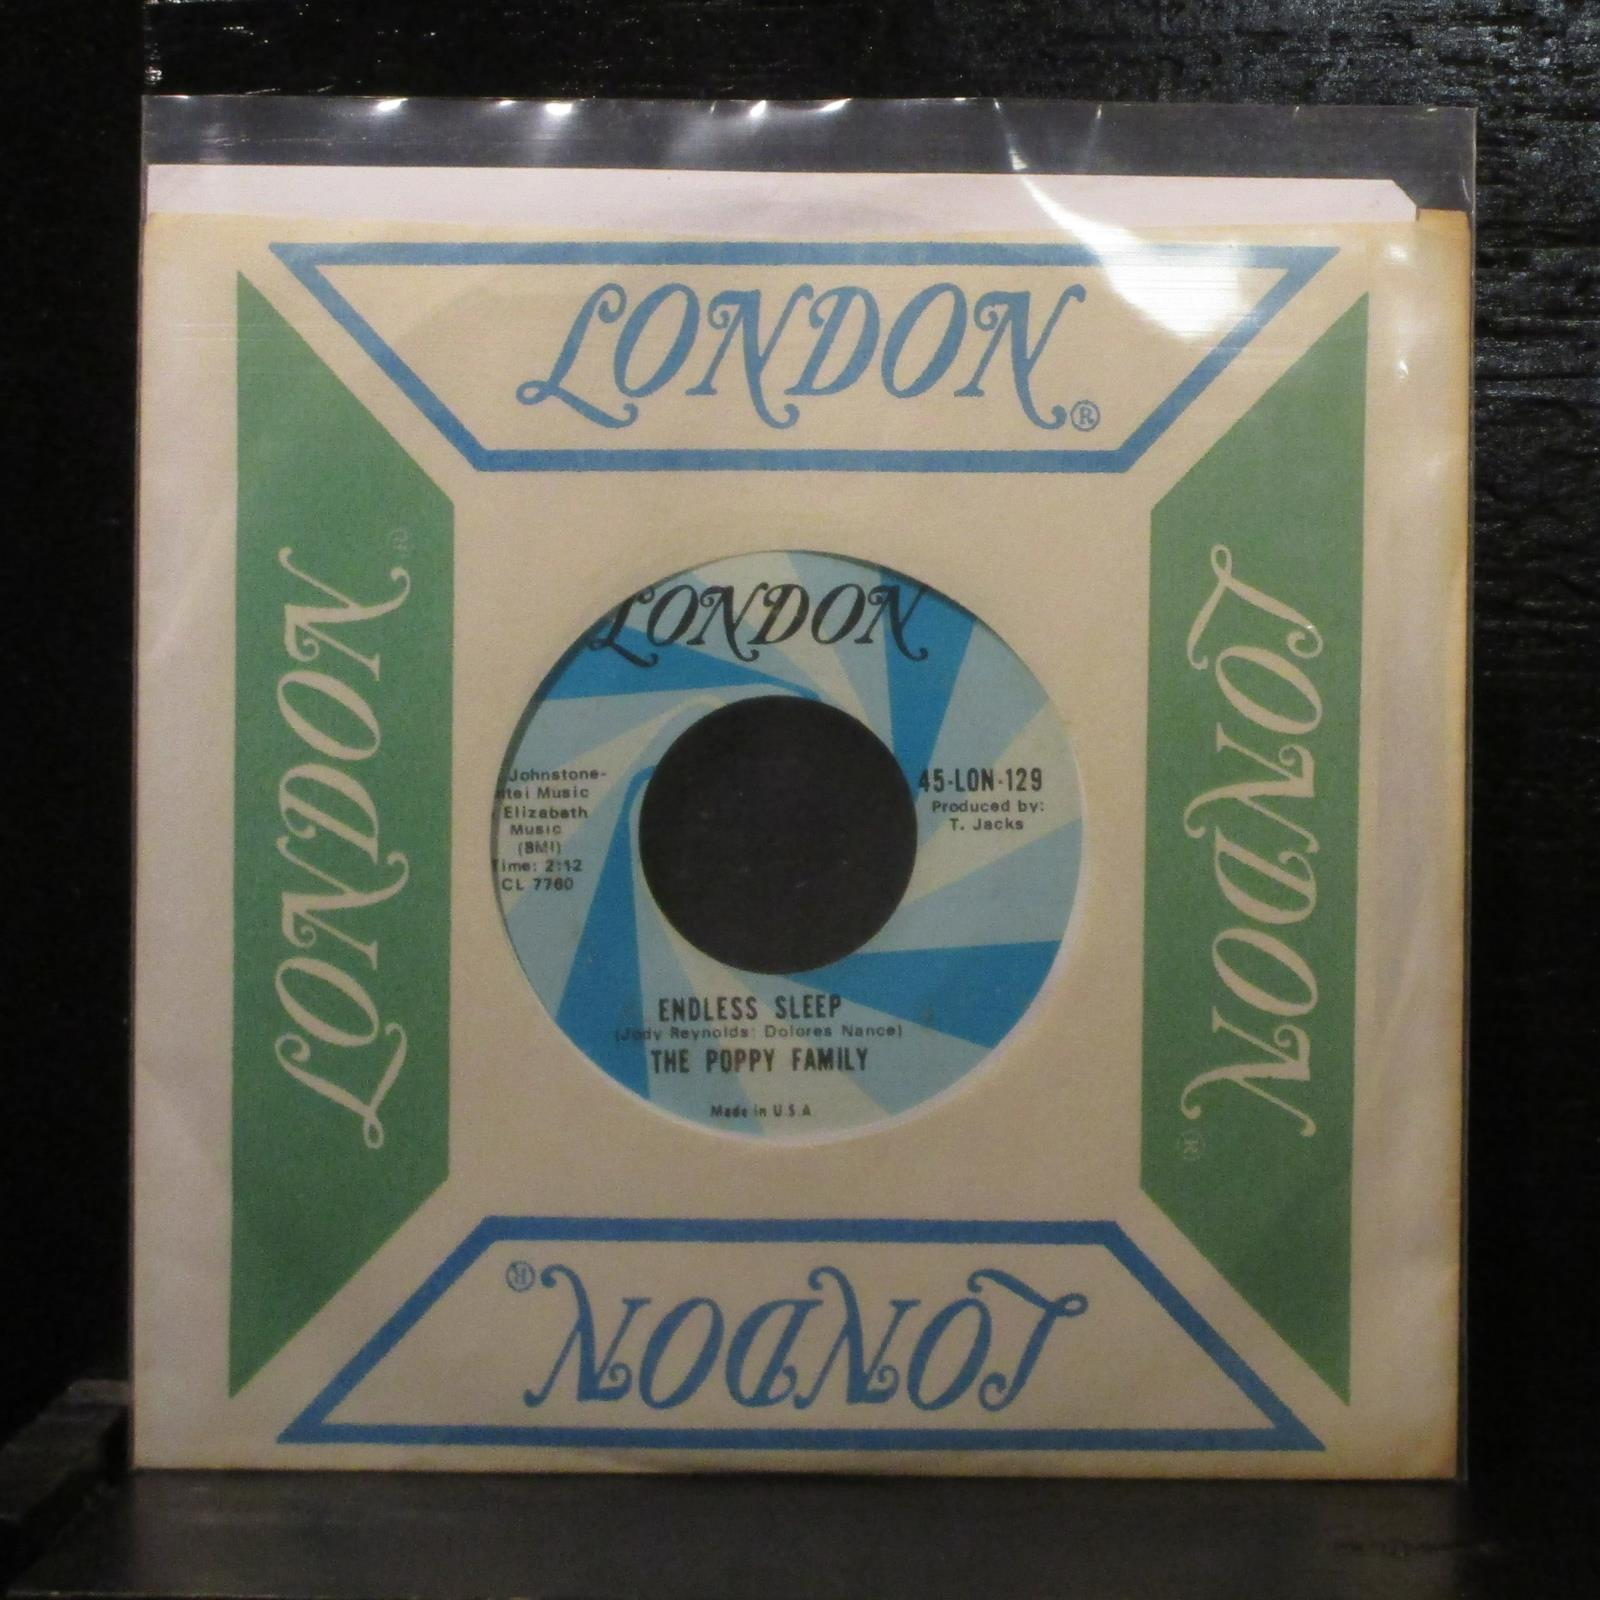 "The Poppy FamilyWhich Way You Goin' Billy? 7"" Vinyl 45 Folk Rock London 45-129"